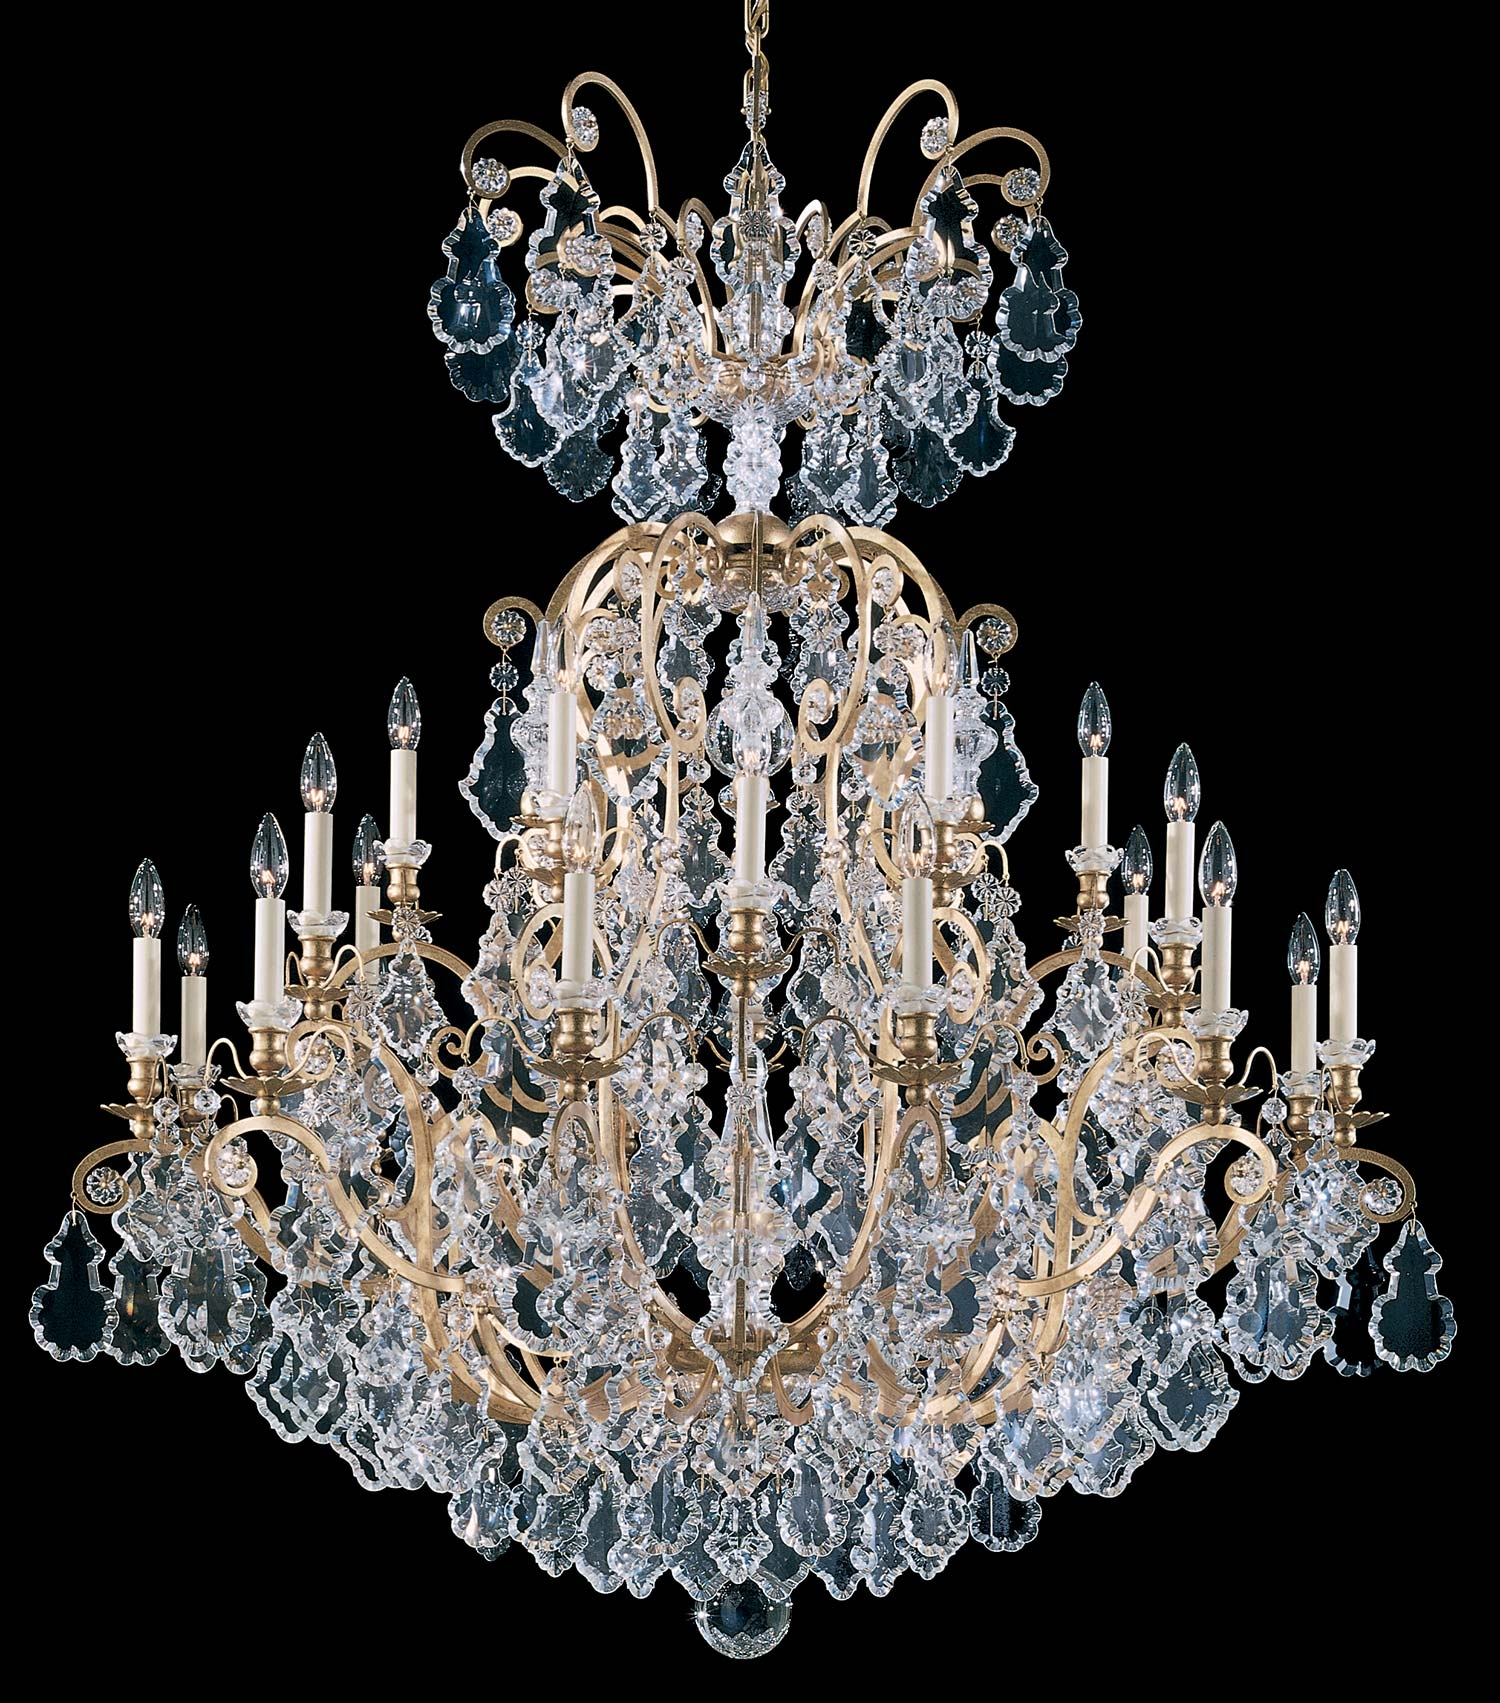 Schonbek 2780 Versailles Collection Chandelier Crystal Traditional Inside Baroque Chandelier (Image 13 of 15)